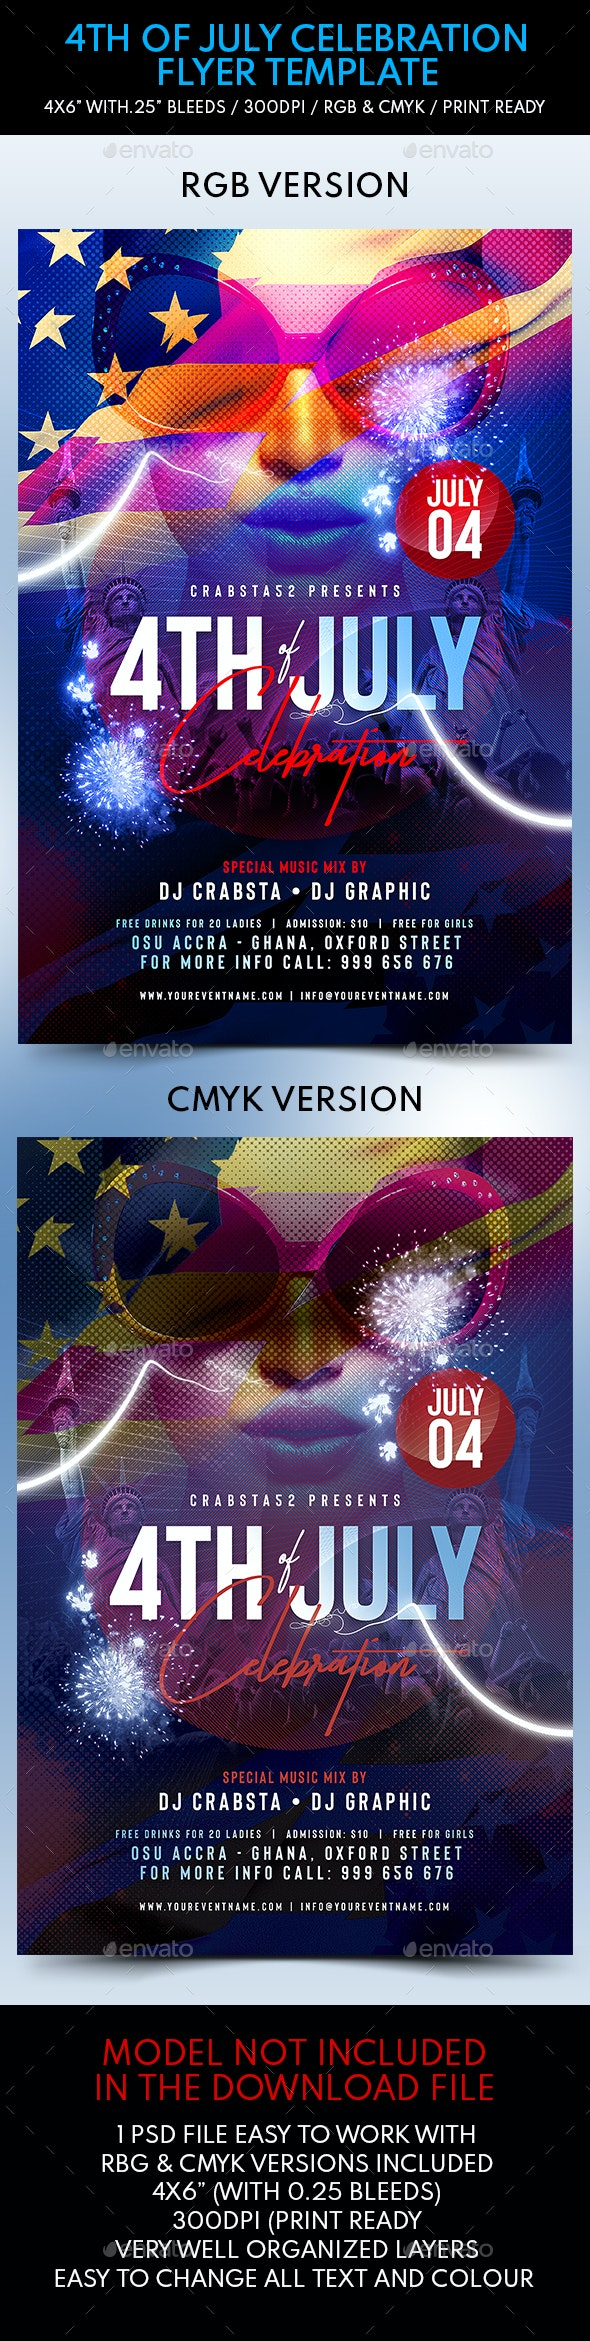 4th of July Celebration Flyer Template - Flyers Print Templates